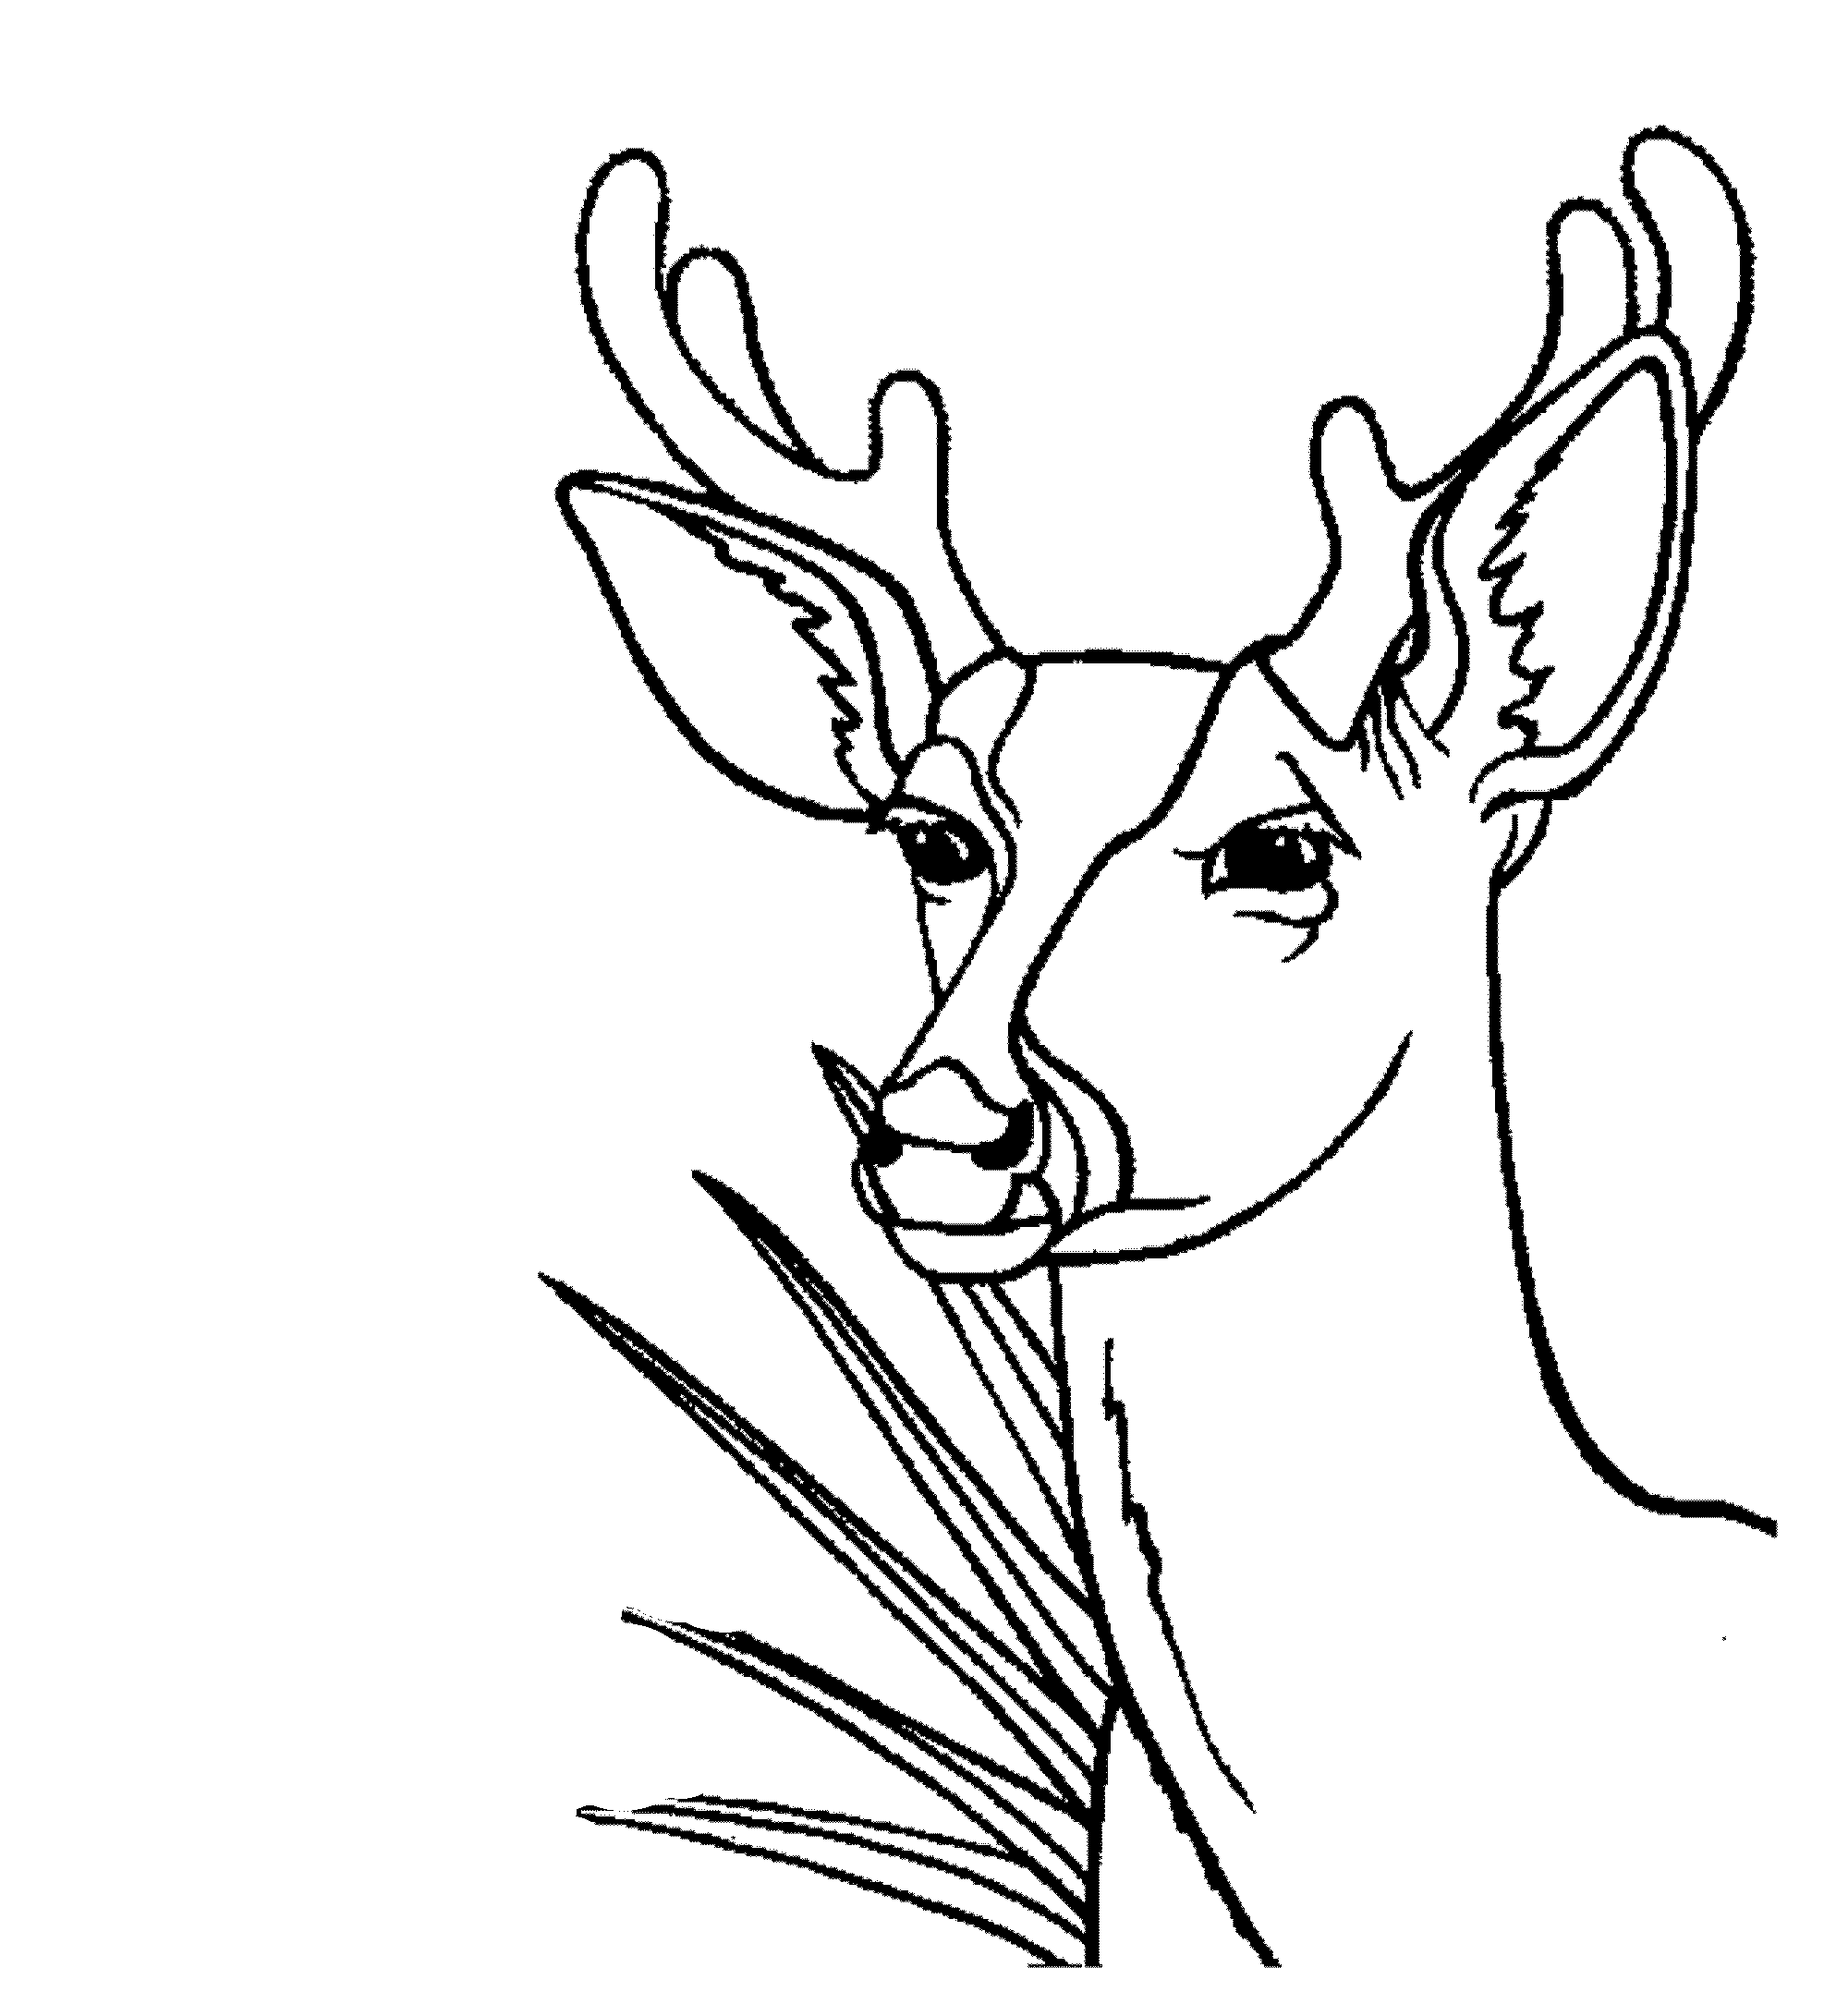 Coloring Page Stag Head - free printable coloring pages | 2169x2000